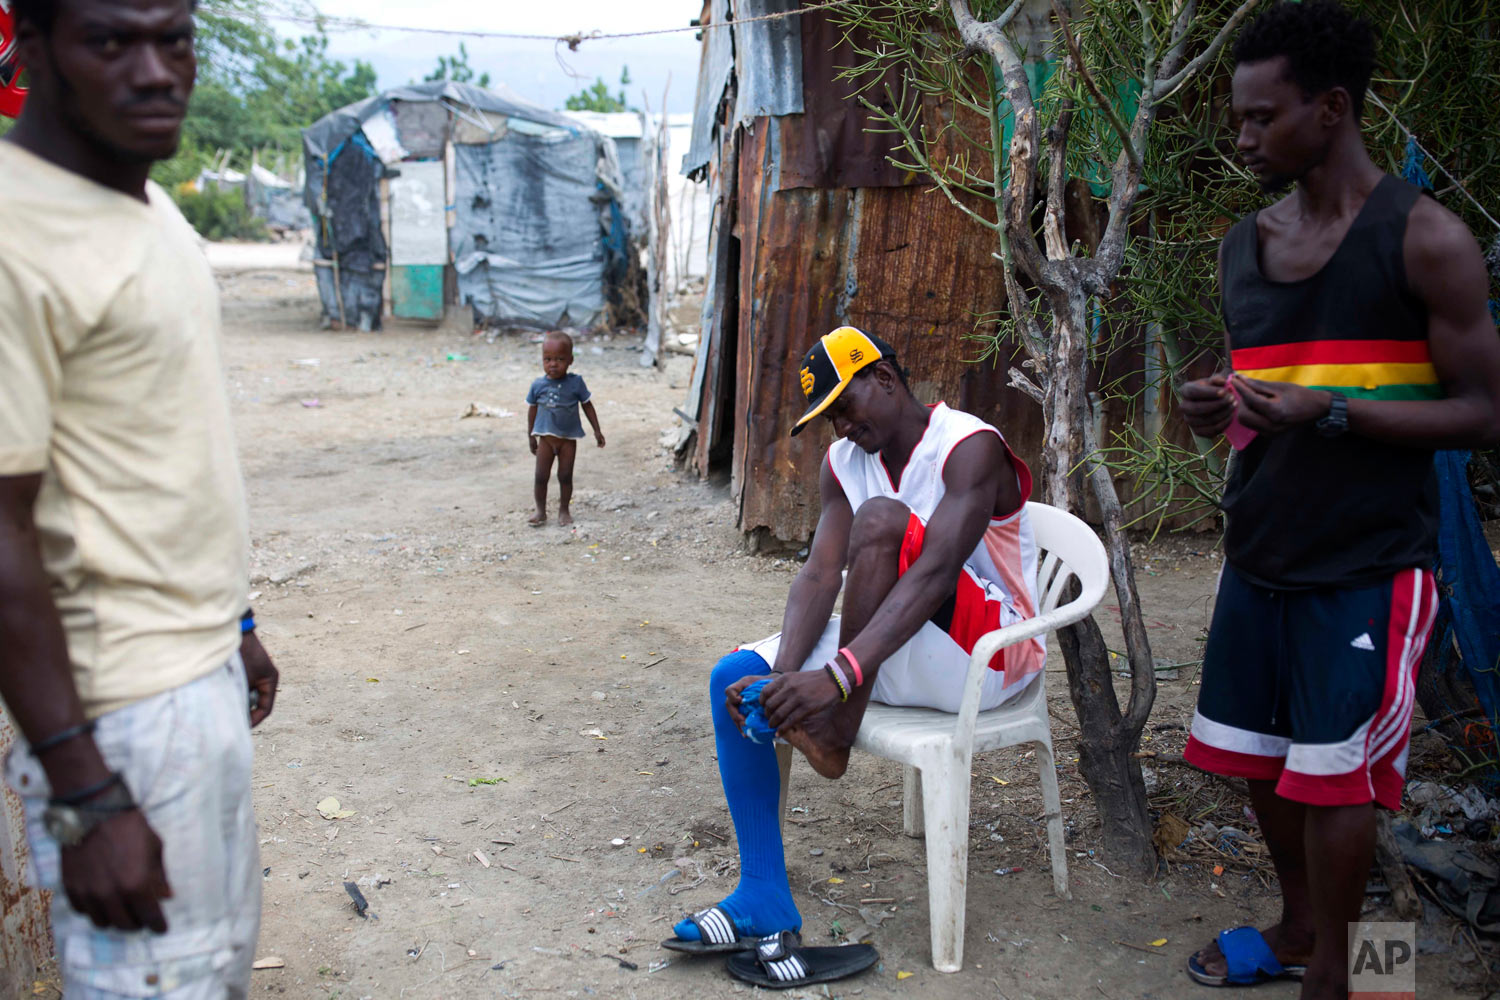 Changlair Aristide, who coaches a soccer team made up mostly of trash scavengers, gets ready to play a game. Aug. 29, 2018. (AP Photo/Dieu Nalio Chery)